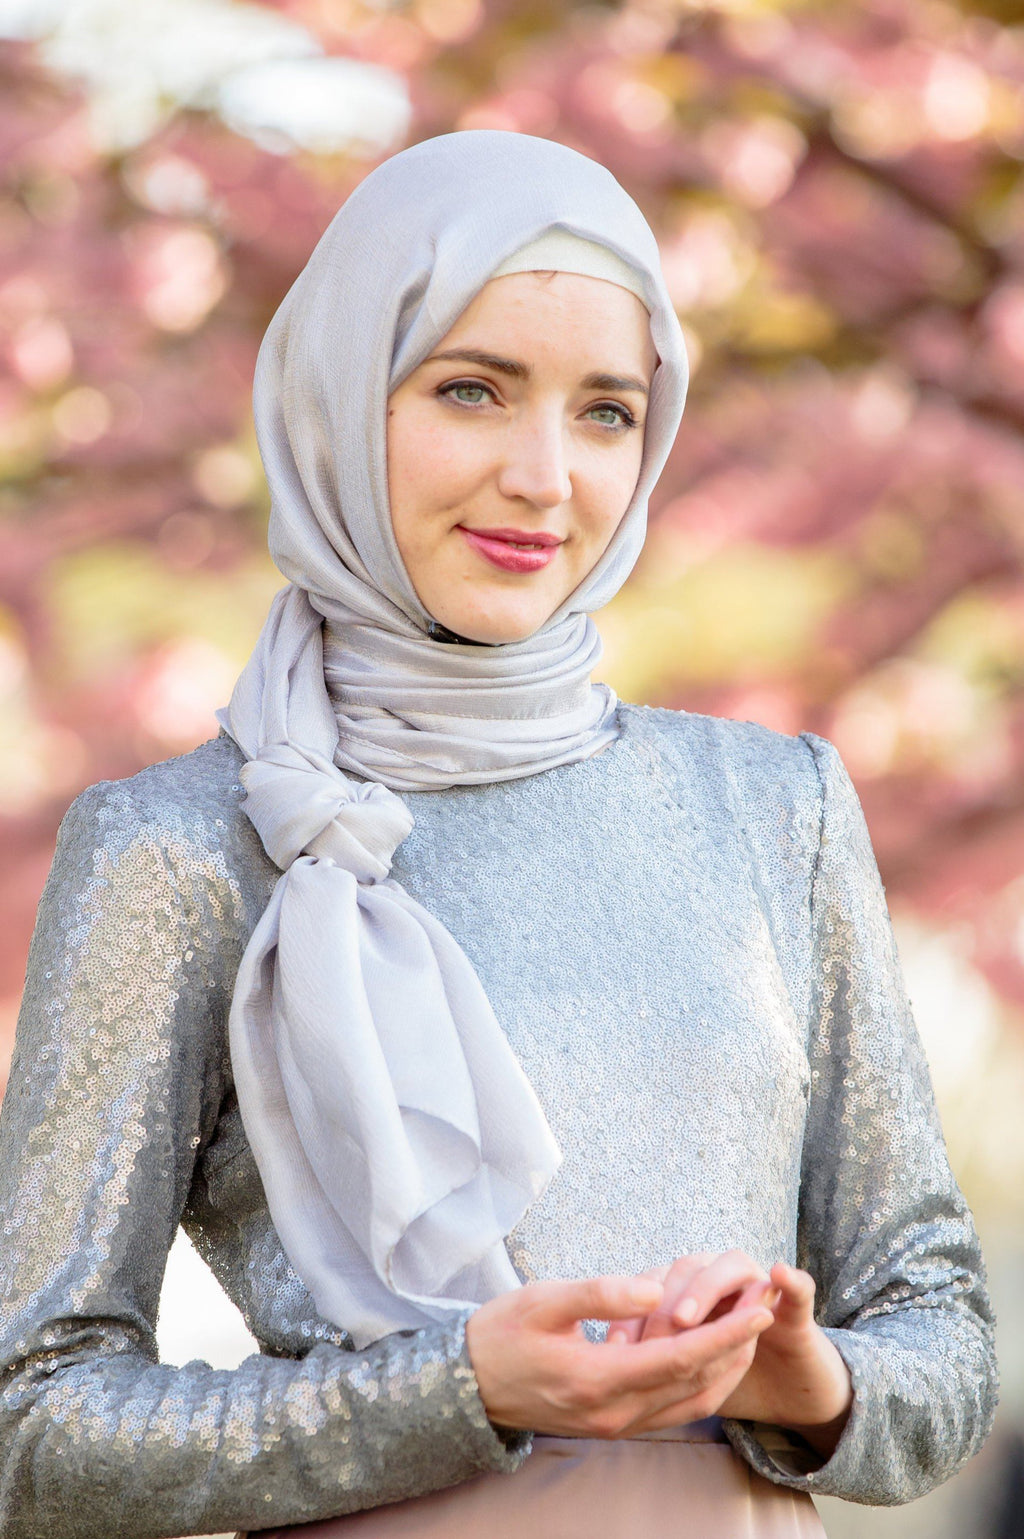 Silver Shimmer Hijab Head Scarf - Abaya, Hijabs, Jilbabs, on sale now at UrbanModesty.com